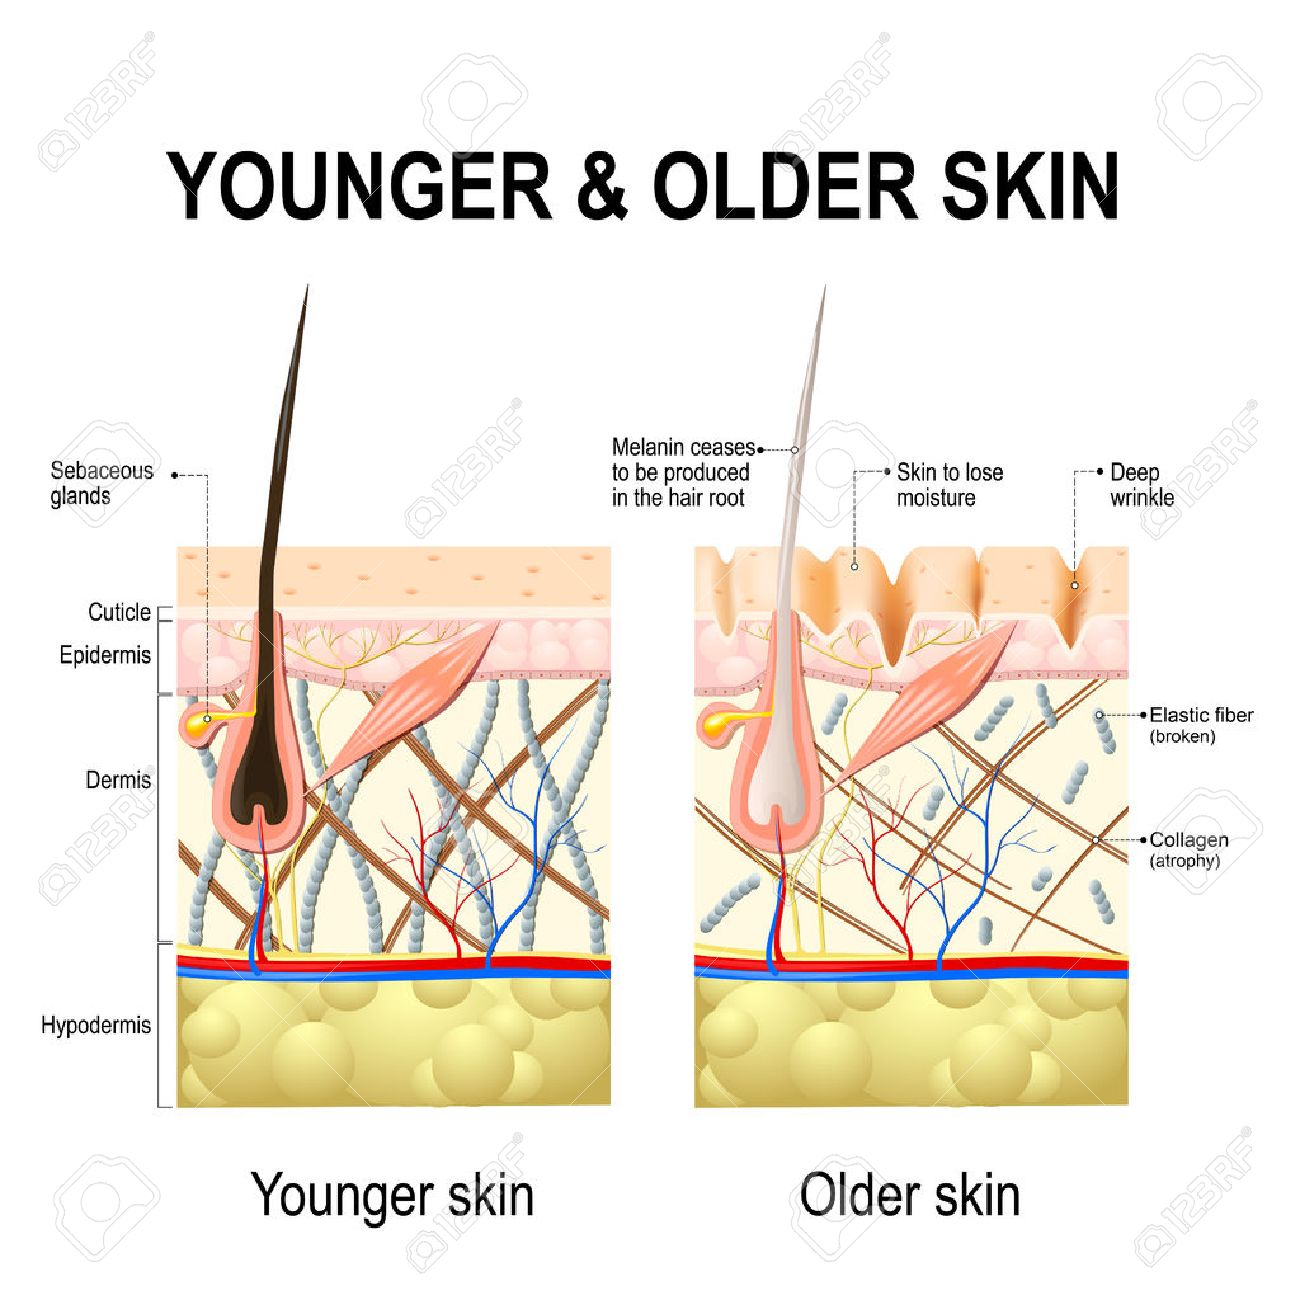 602 skin changes stock vector illustration and royalty free skin human skin changes or ageing skin a diagram of younger and older skin showing the pooptronica Choice Image